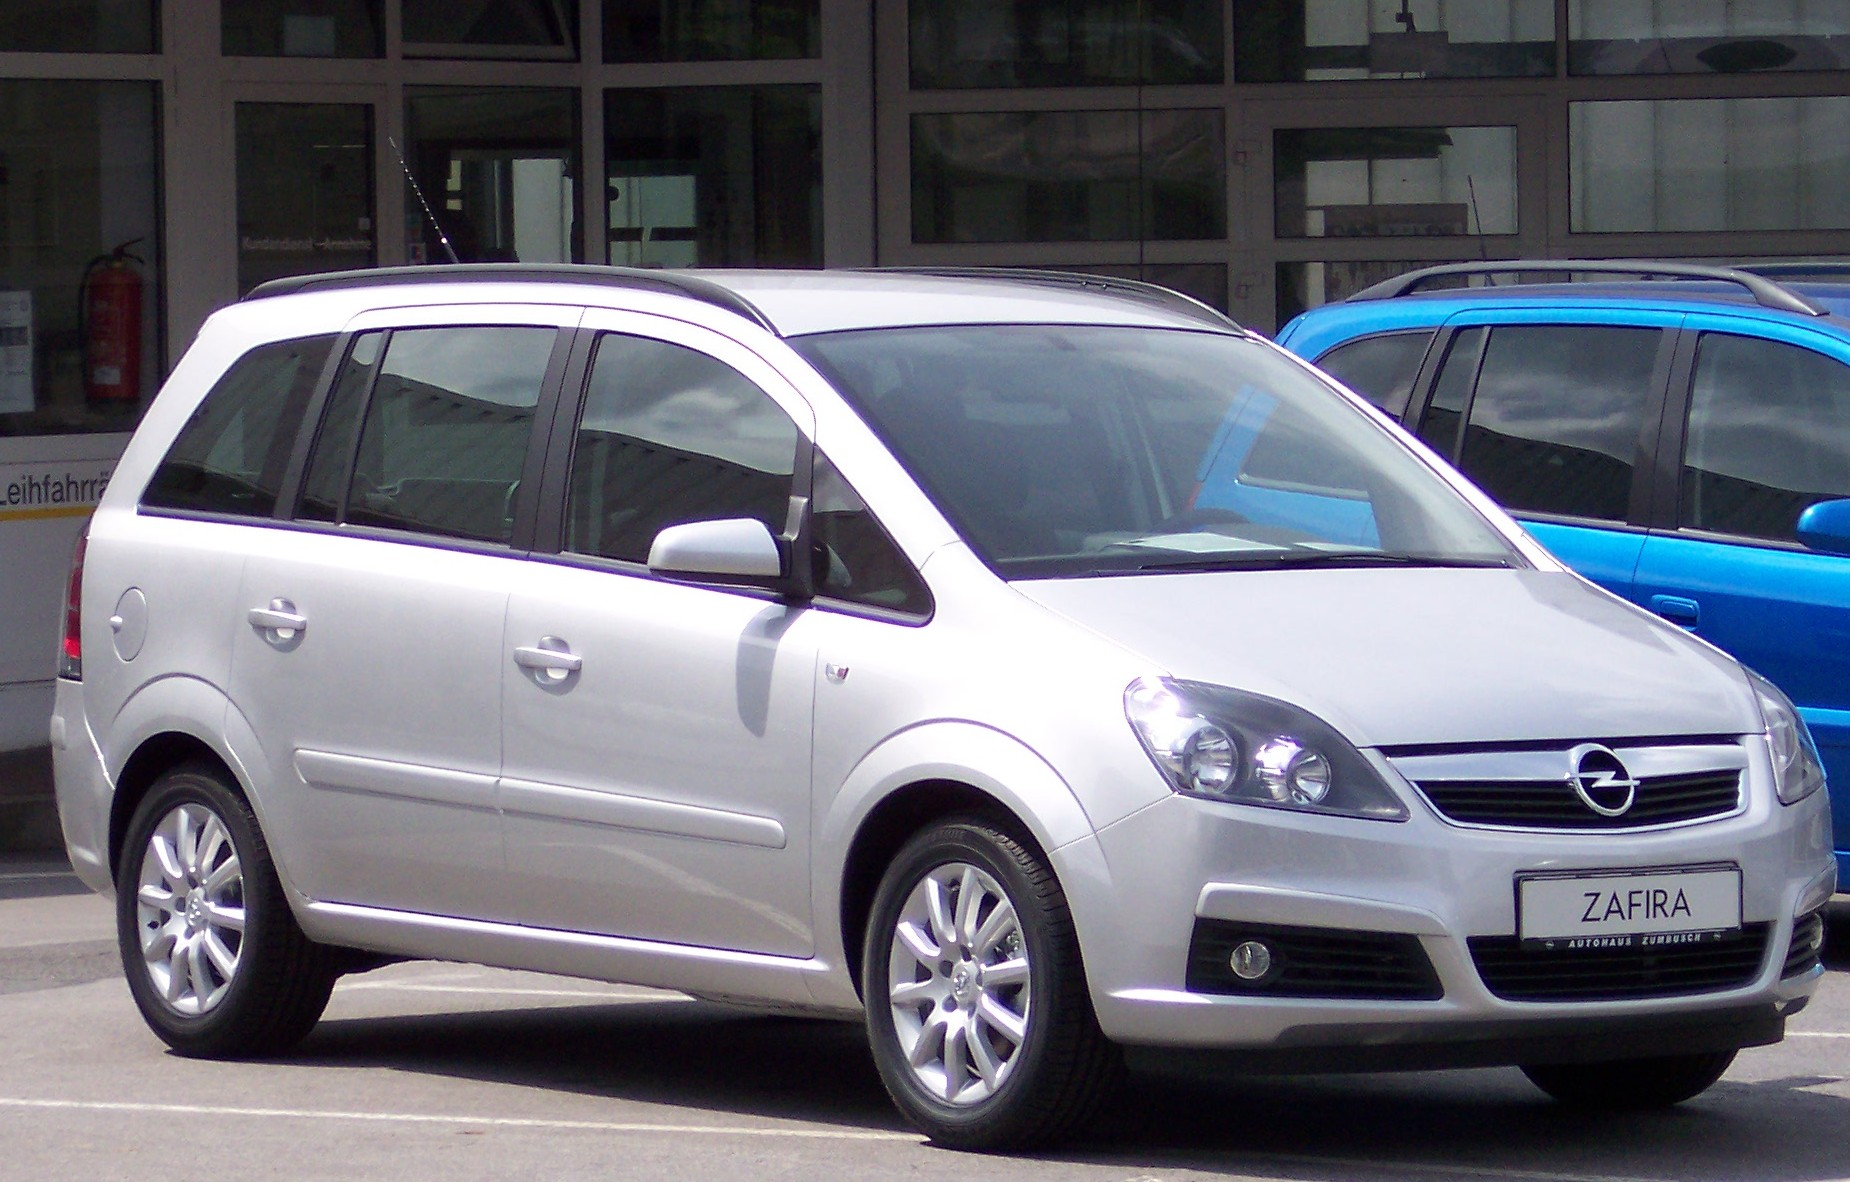 Opel Zafira — a model manufactured by Opel. The model received many reviews